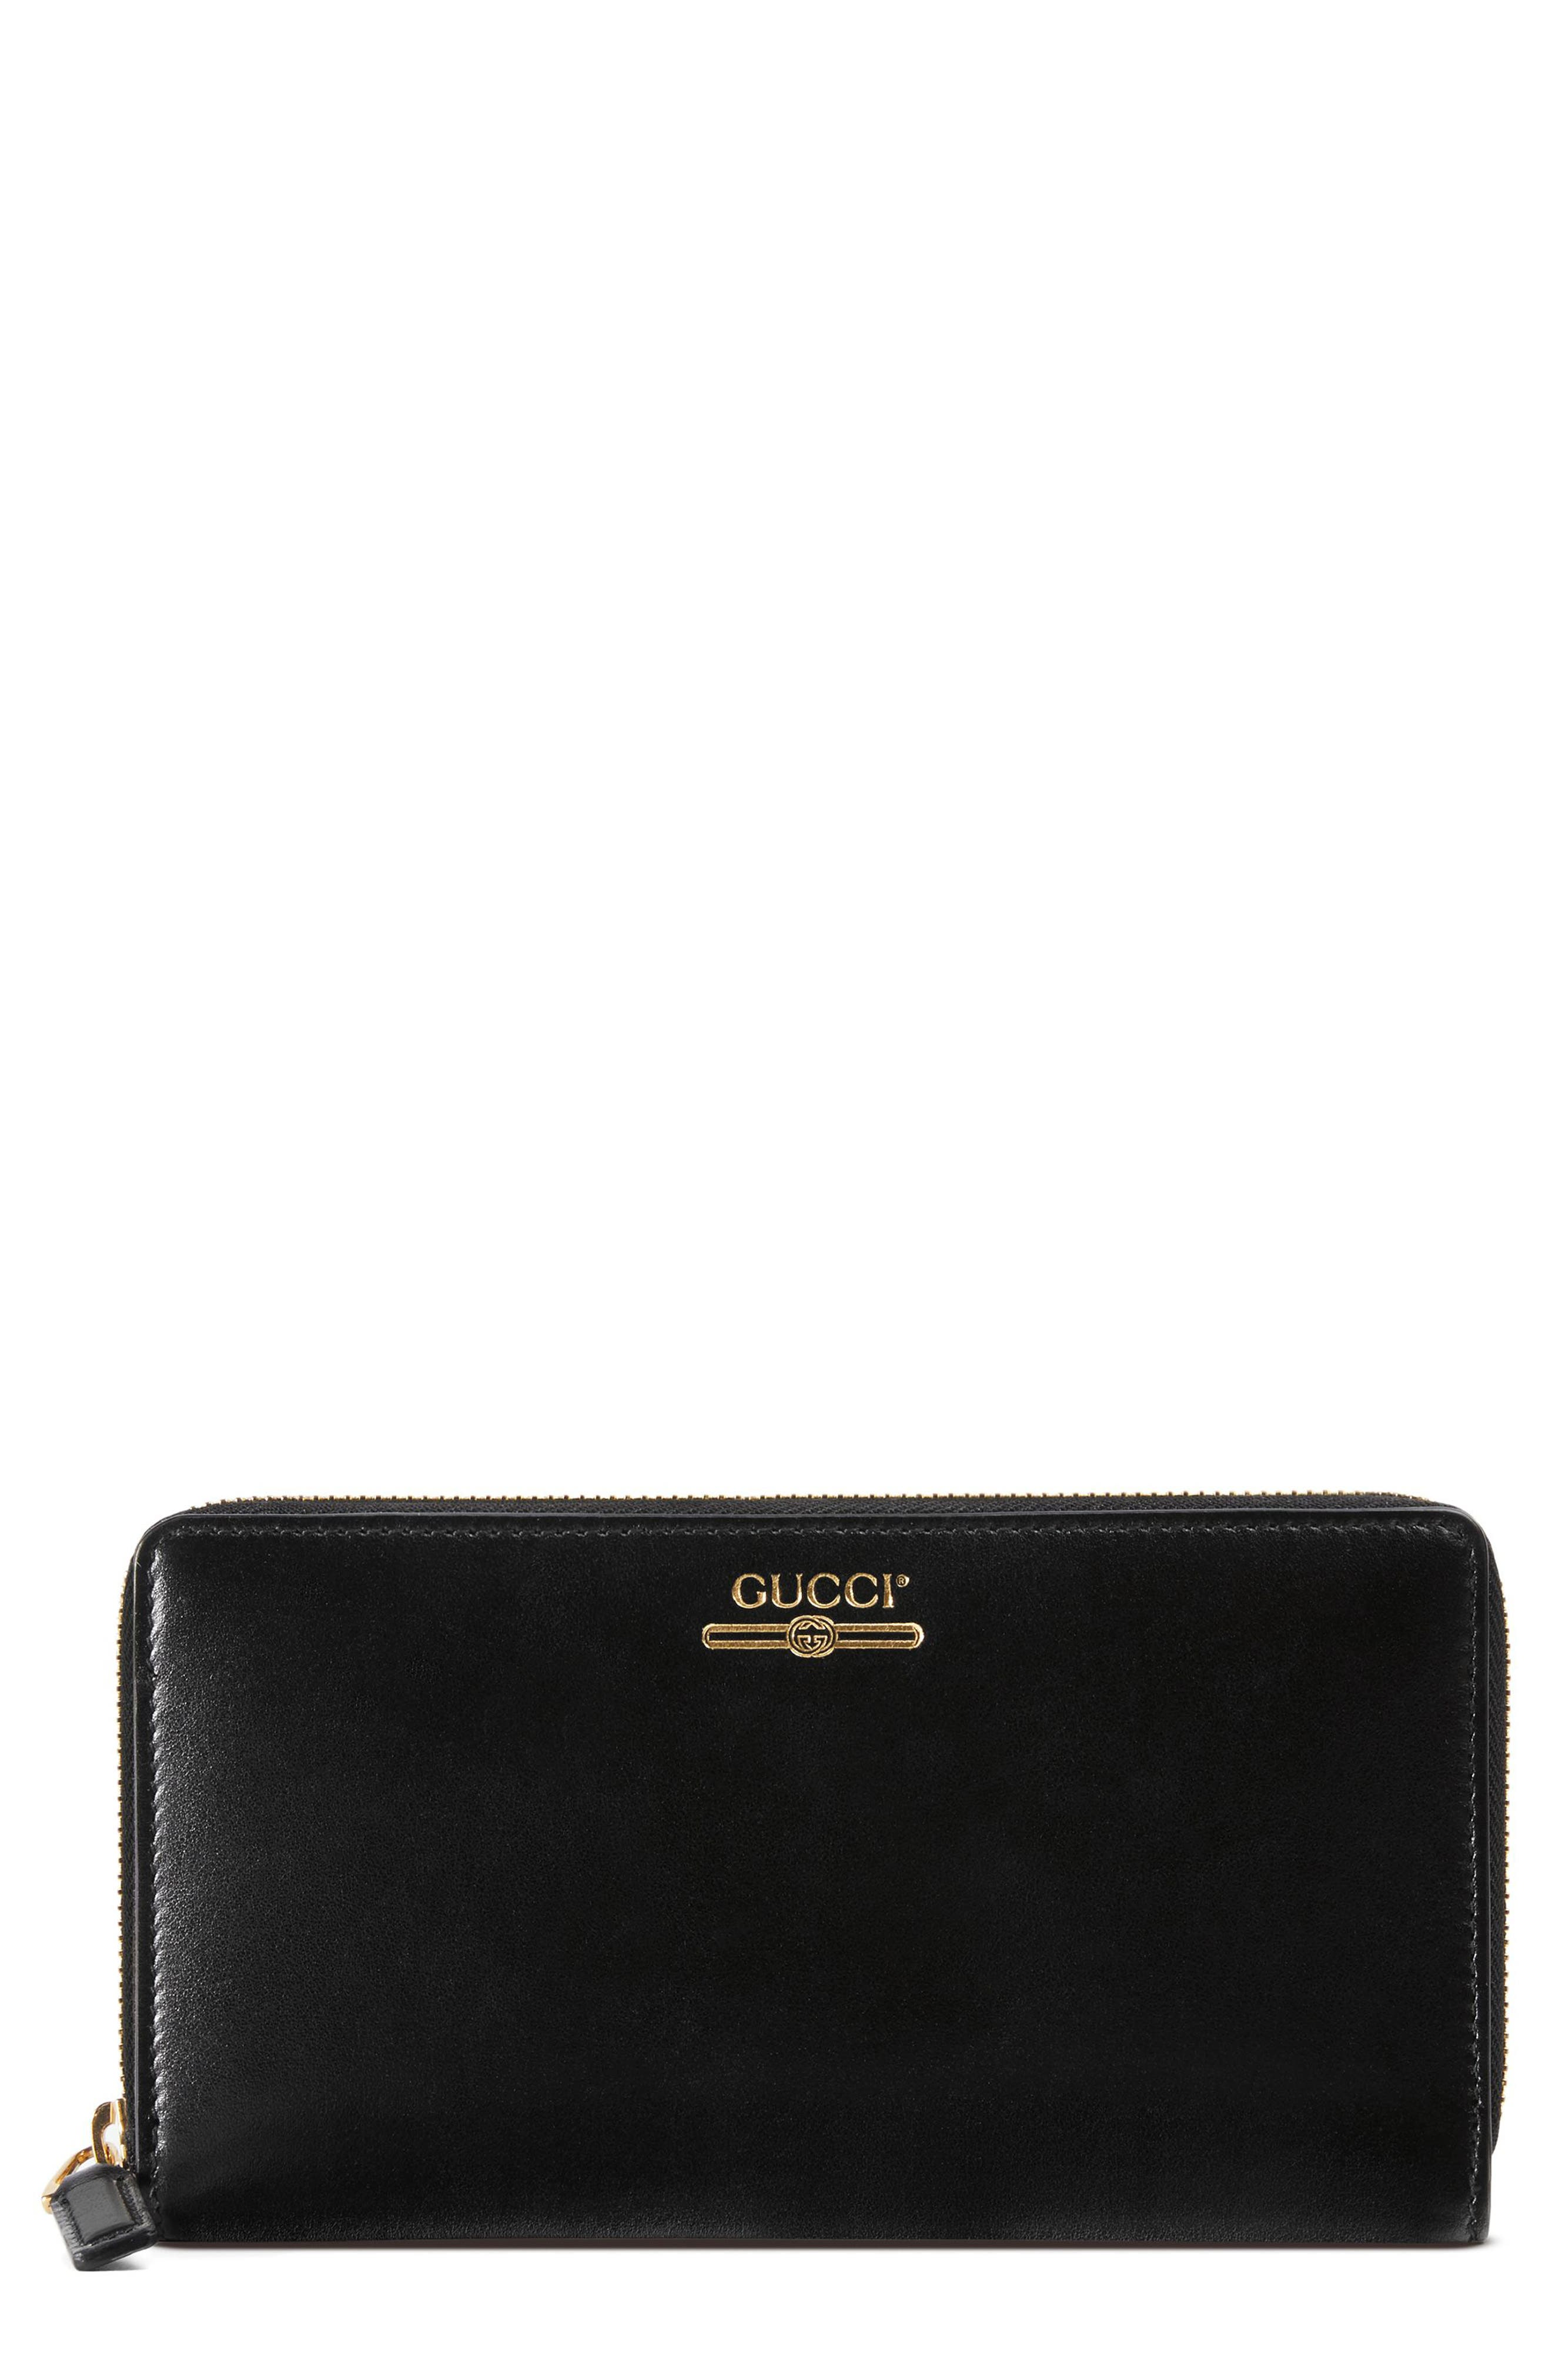 5f50be9a6922 Men's Gucci Wallets | Nordstrom